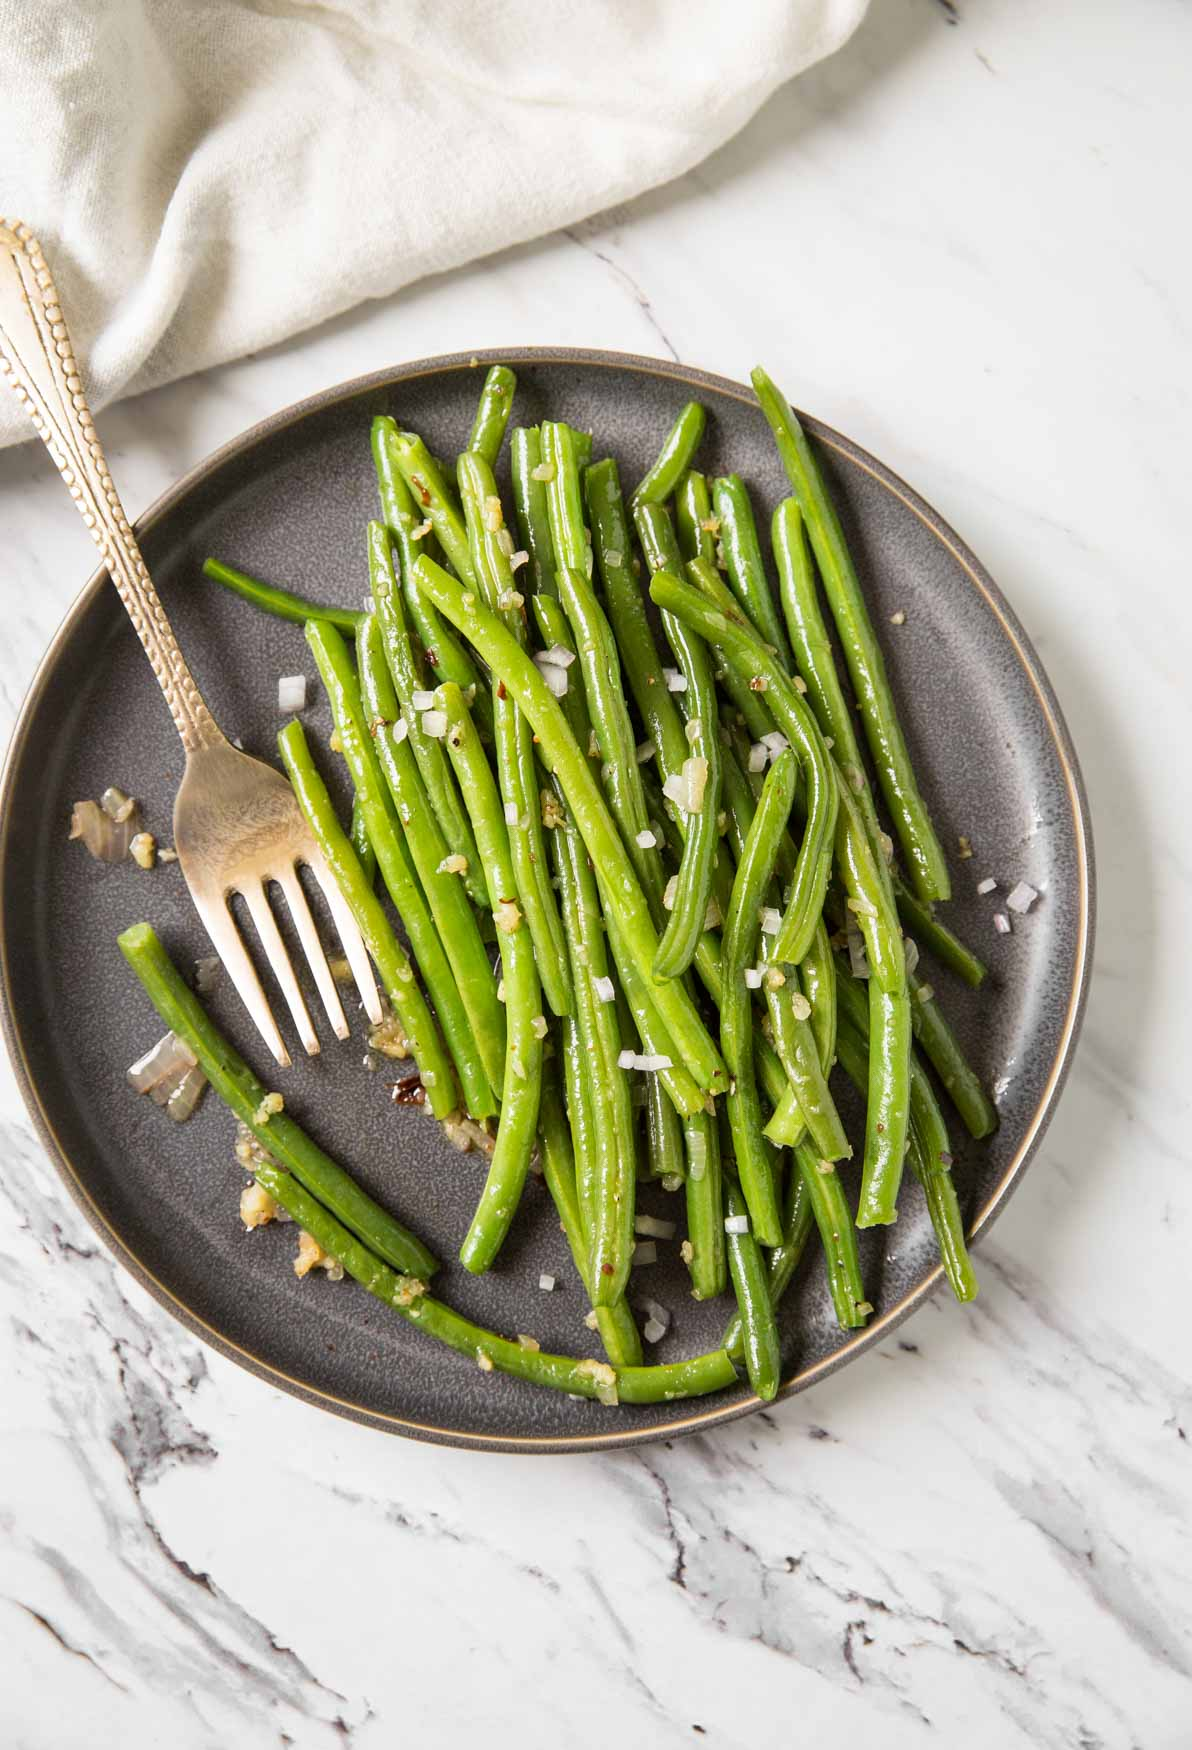 Sauteed garlic green beans in a serving plate with spoon